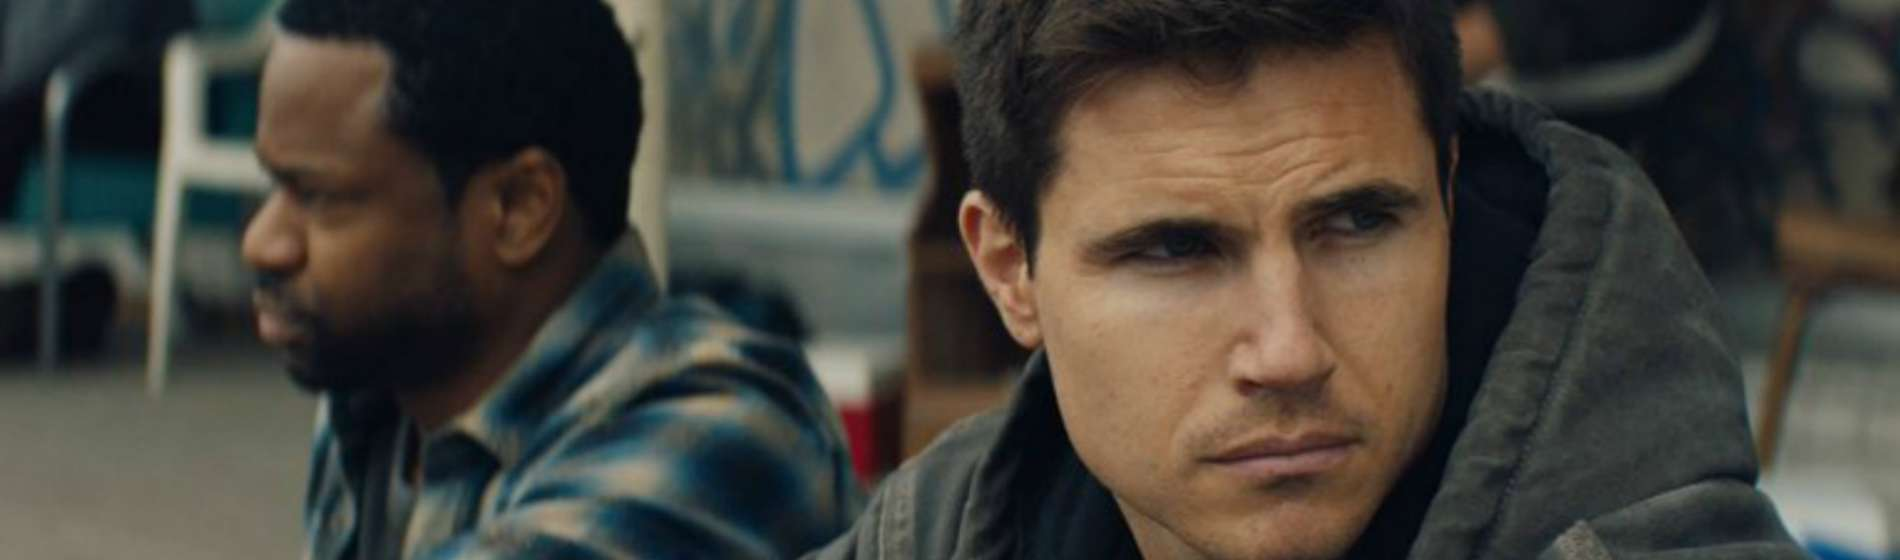 code-8-feature-image-robbie-amell